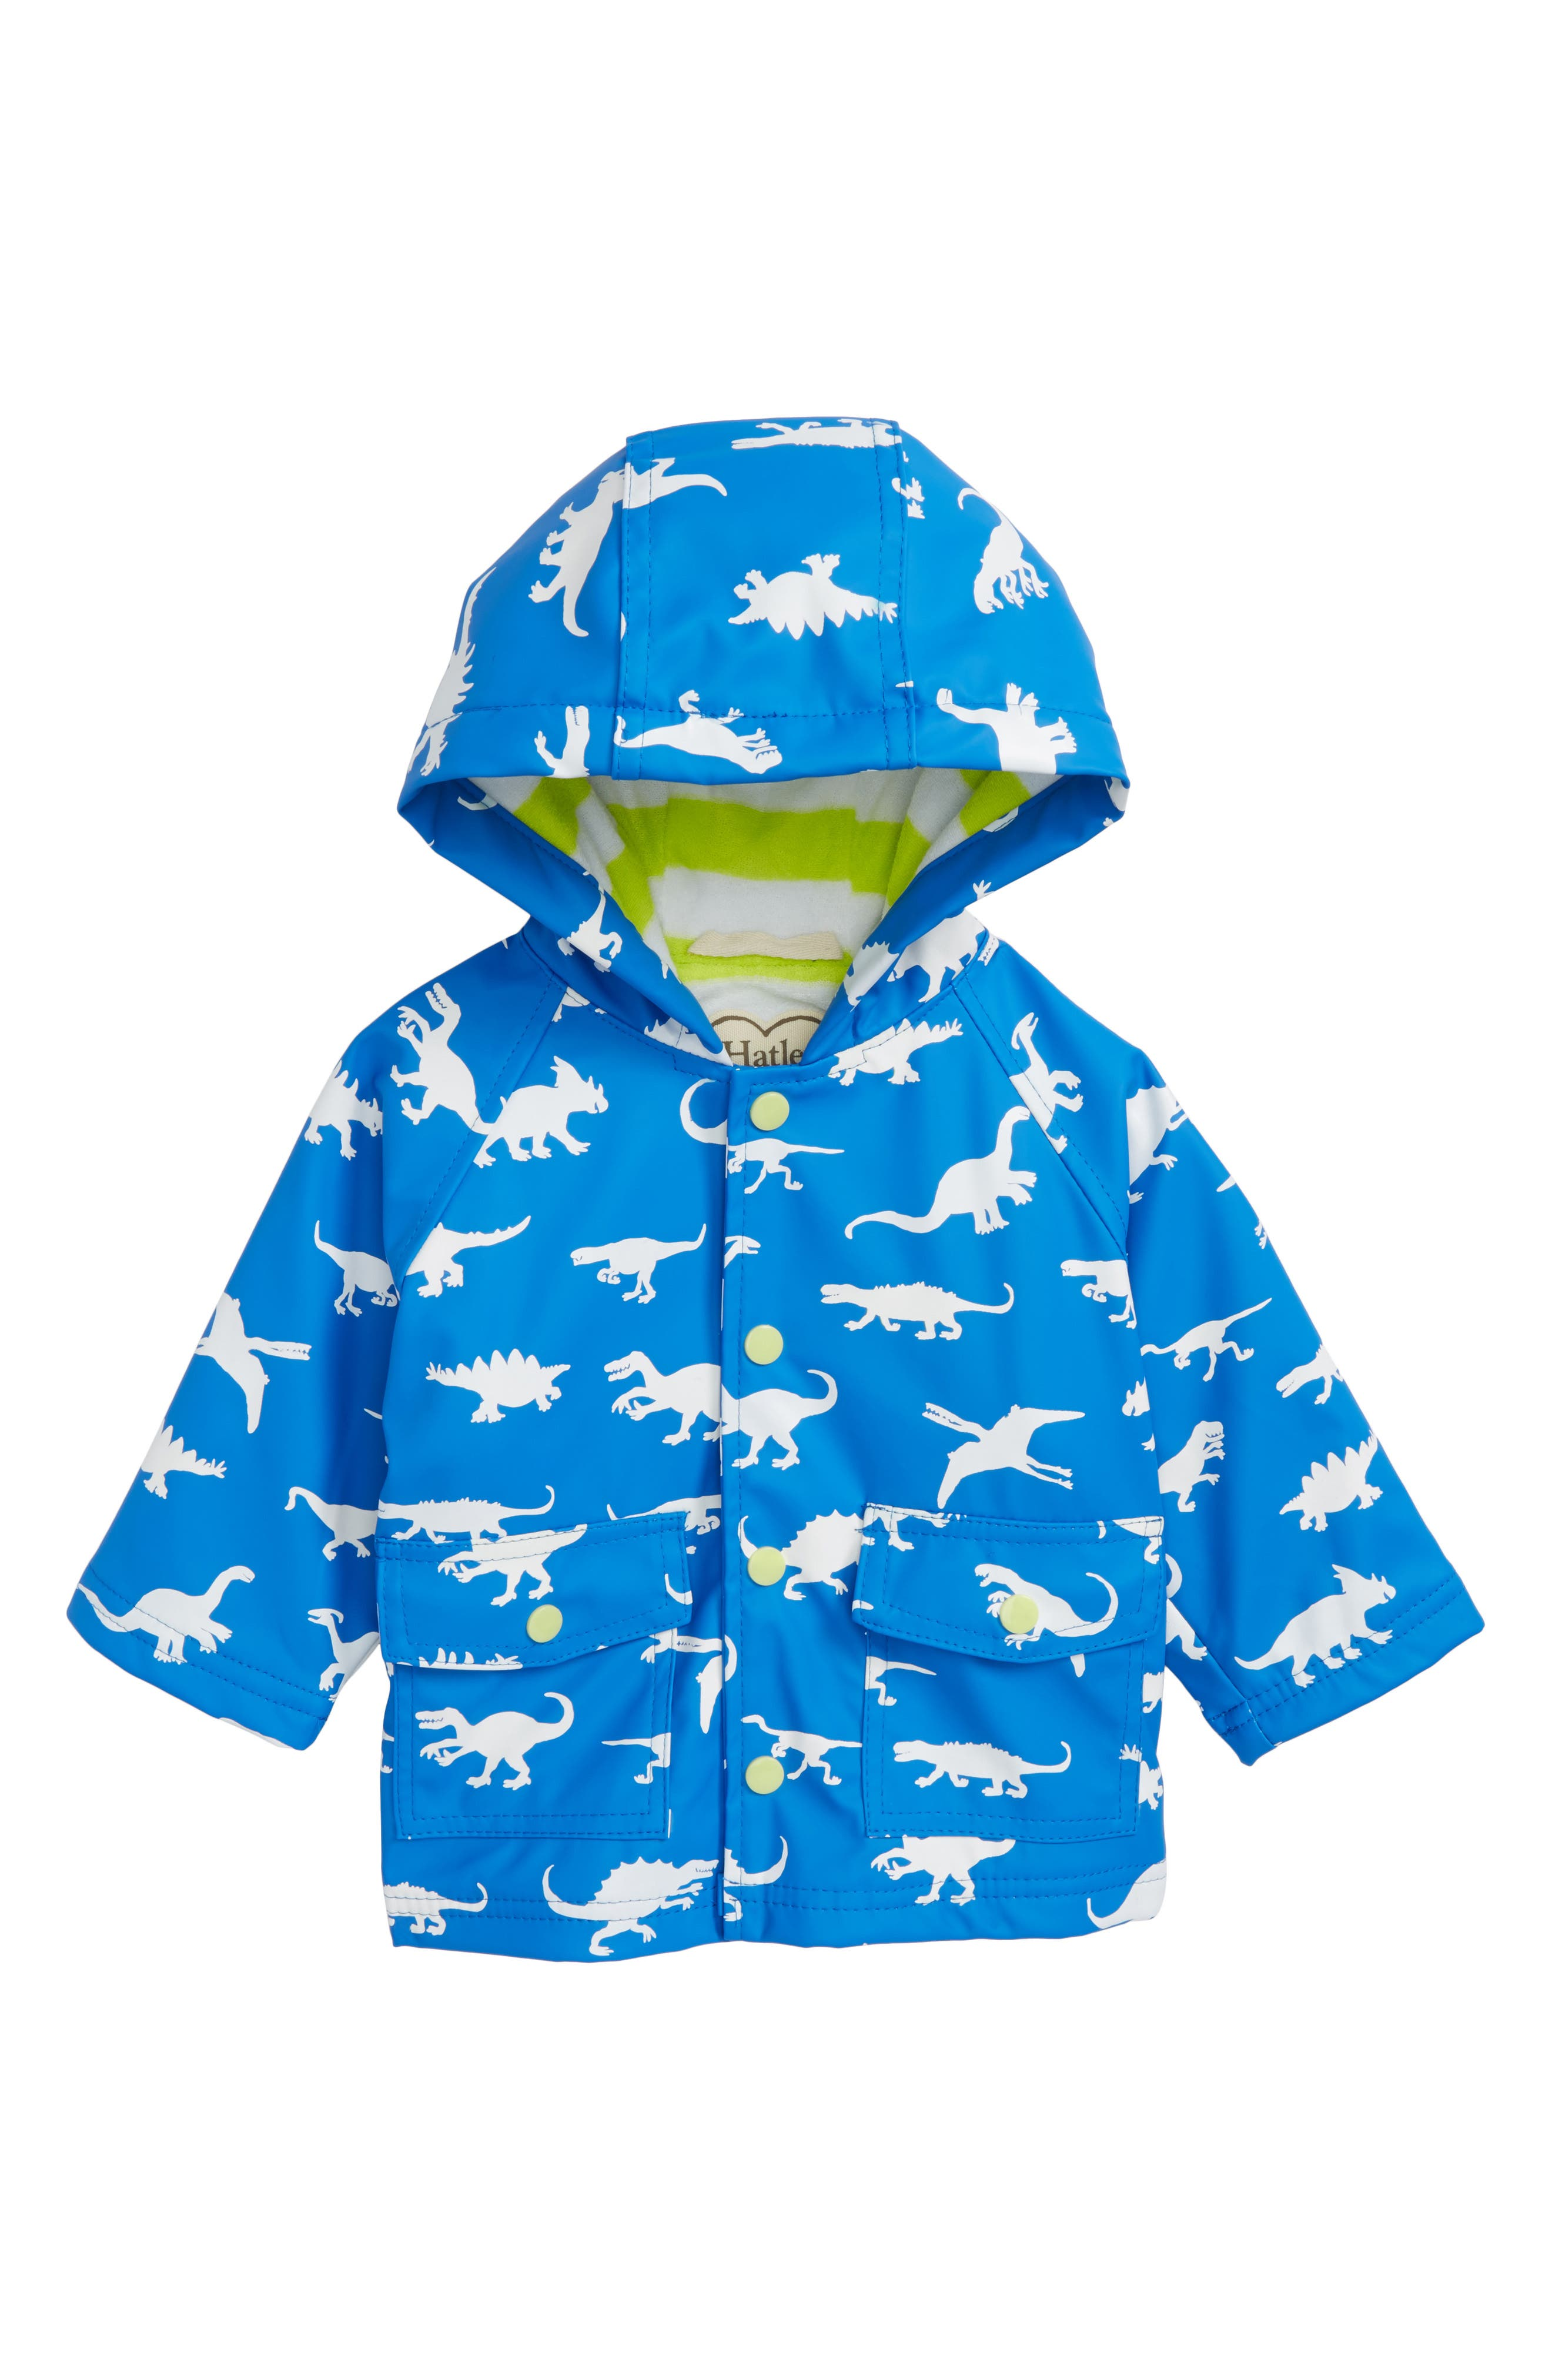 Alternate Image 1 Selected - Hatley Dinosaur Menagerie Color Changing Hooded Raincoat (Baby Boys)